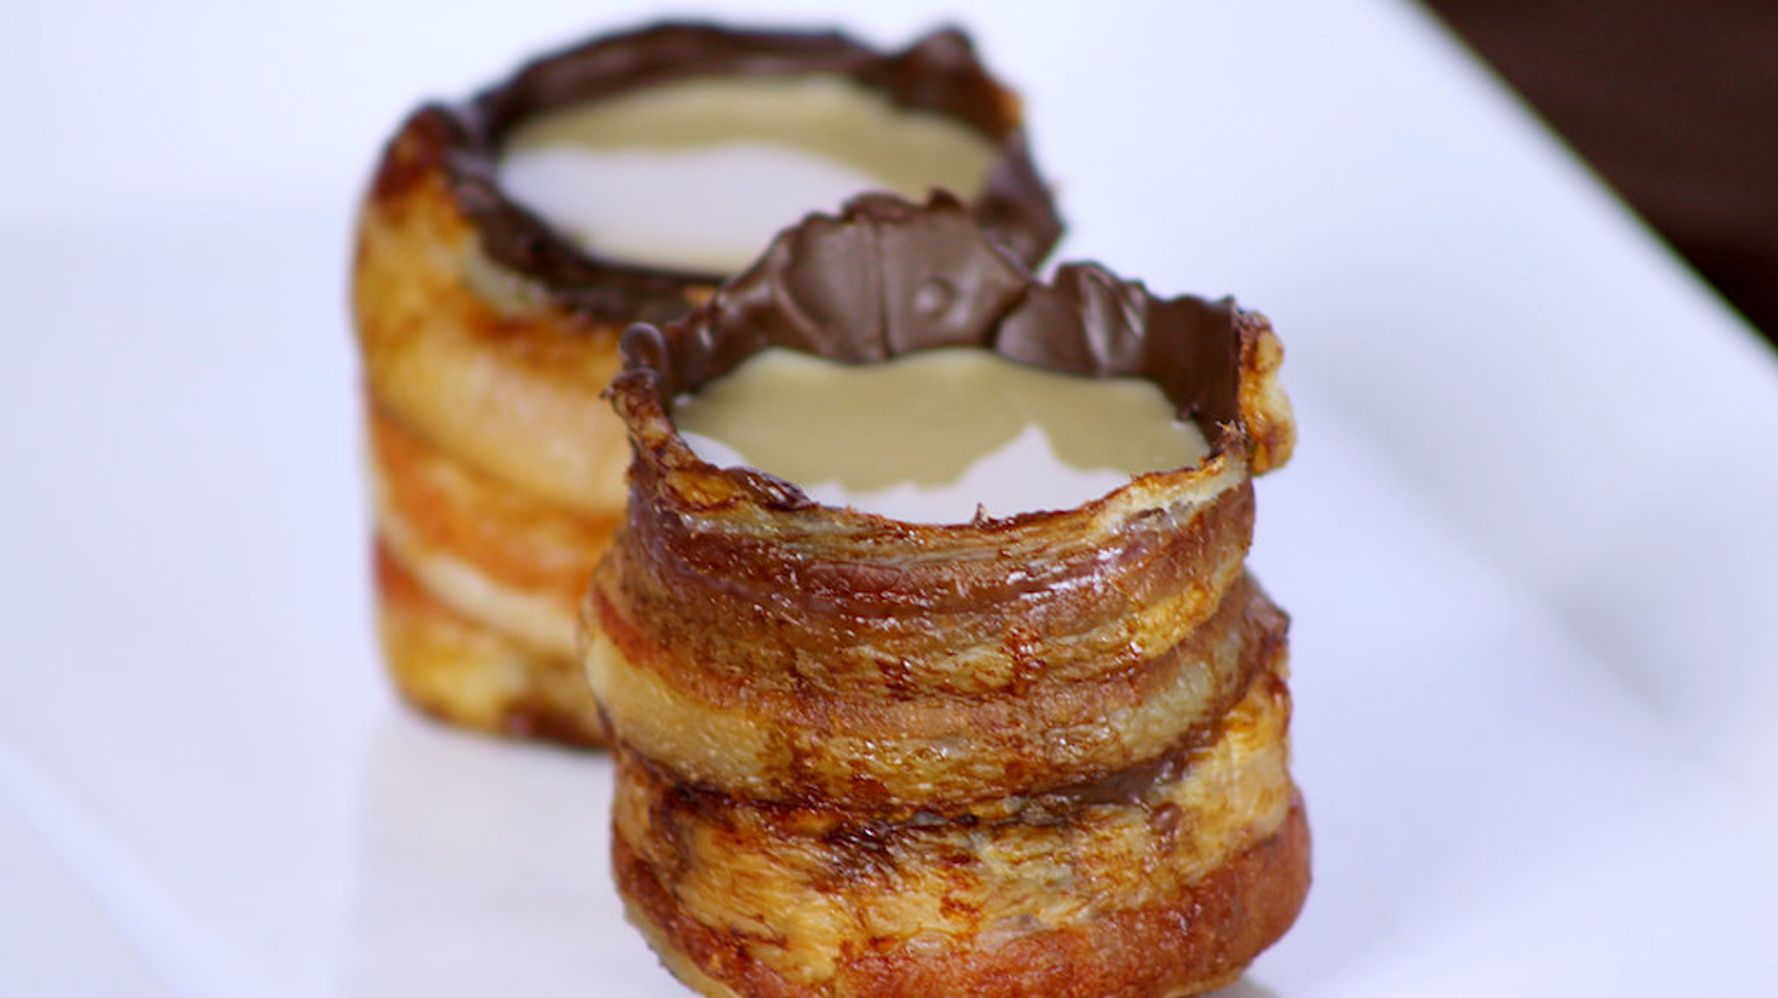 Bacon-Chocolate Shot Glasses Are Real, And You Can Make Them Too